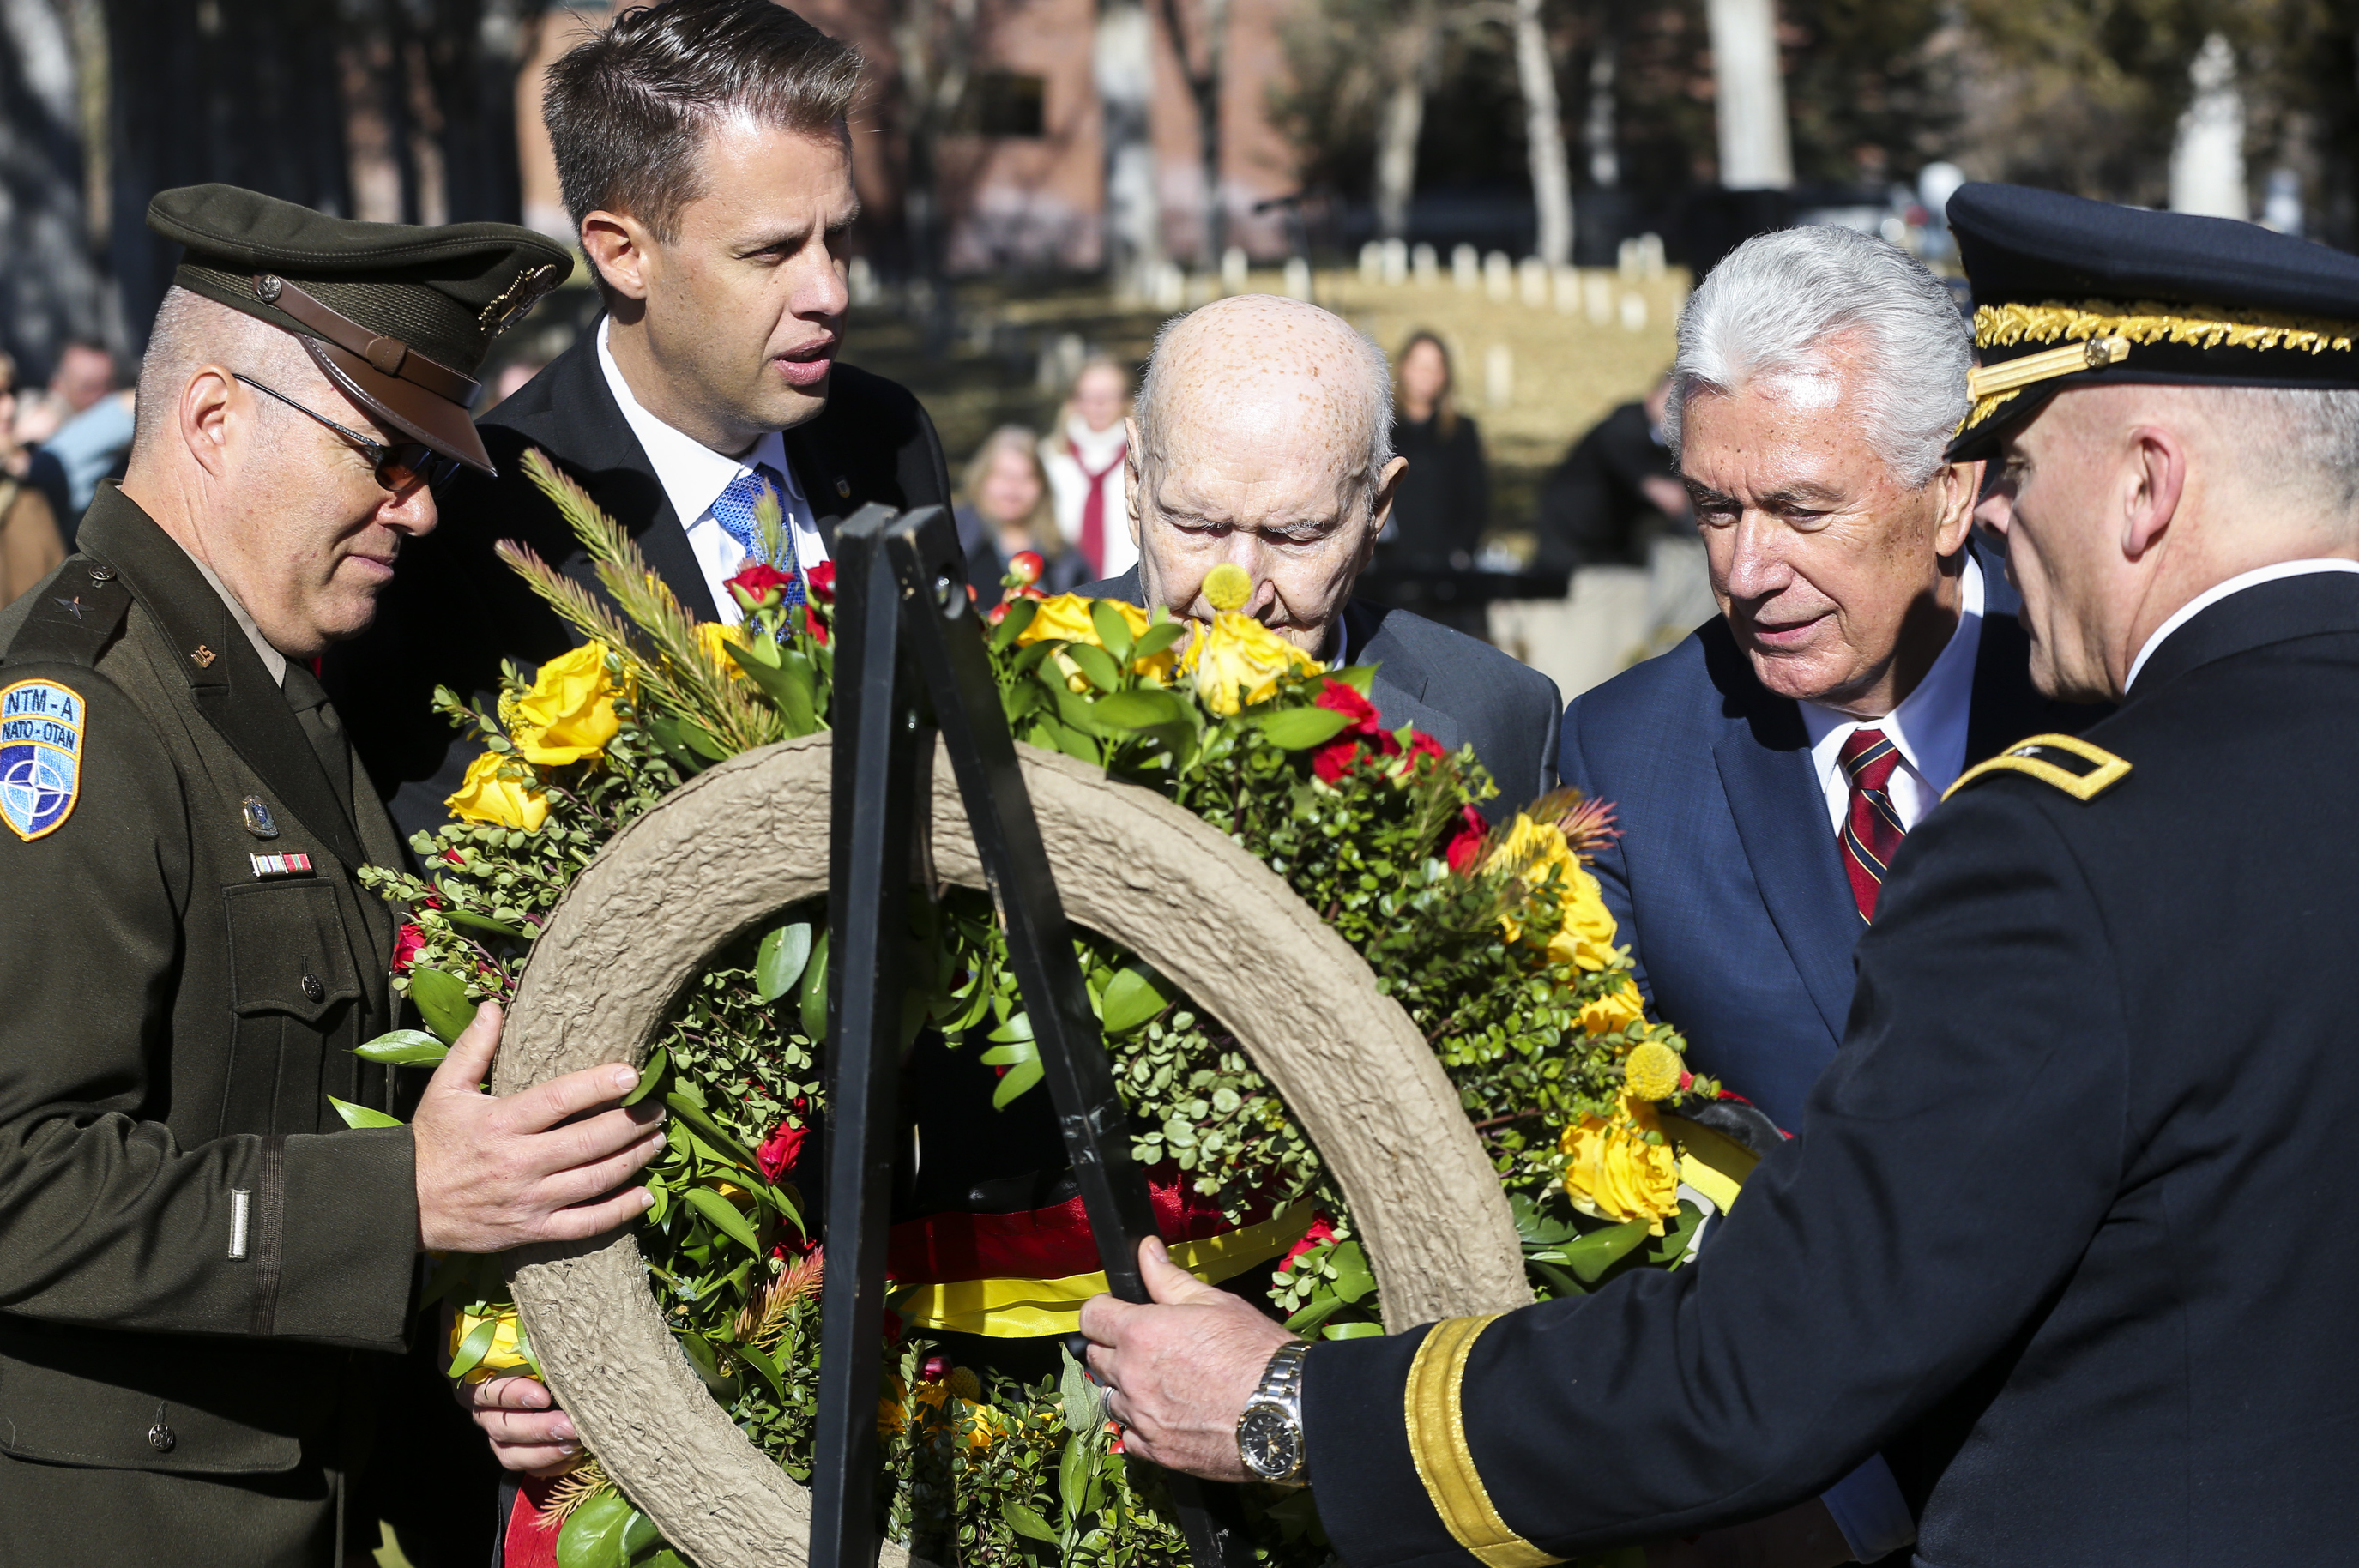 From left, Brig. Gen. Douglas Cherry, James Burton, honorary consul to the Republic of Germany, Berlin airlift member Gail Halvorsen, Elder Dieter F. Uchtdorf, of the Quorum of the Twelve Apostles of The Church of Jesus Christ of Latter-day Saints, and Brigadier Gen. Michael Turley place a wreath during the Volkstrauertag ceremony at the Fort Douglas Military Cemetery in Salt Lake City on Sunday, Nov. 17, 2019. Volkstrauertag is the German National Day of Remembrance where the German people honor those that have fall in the line of duty as well as those that were victims of the government. Fort Douglas Military Cemetery is the final resting place of several German prisoners of war that never made it back to Germany.